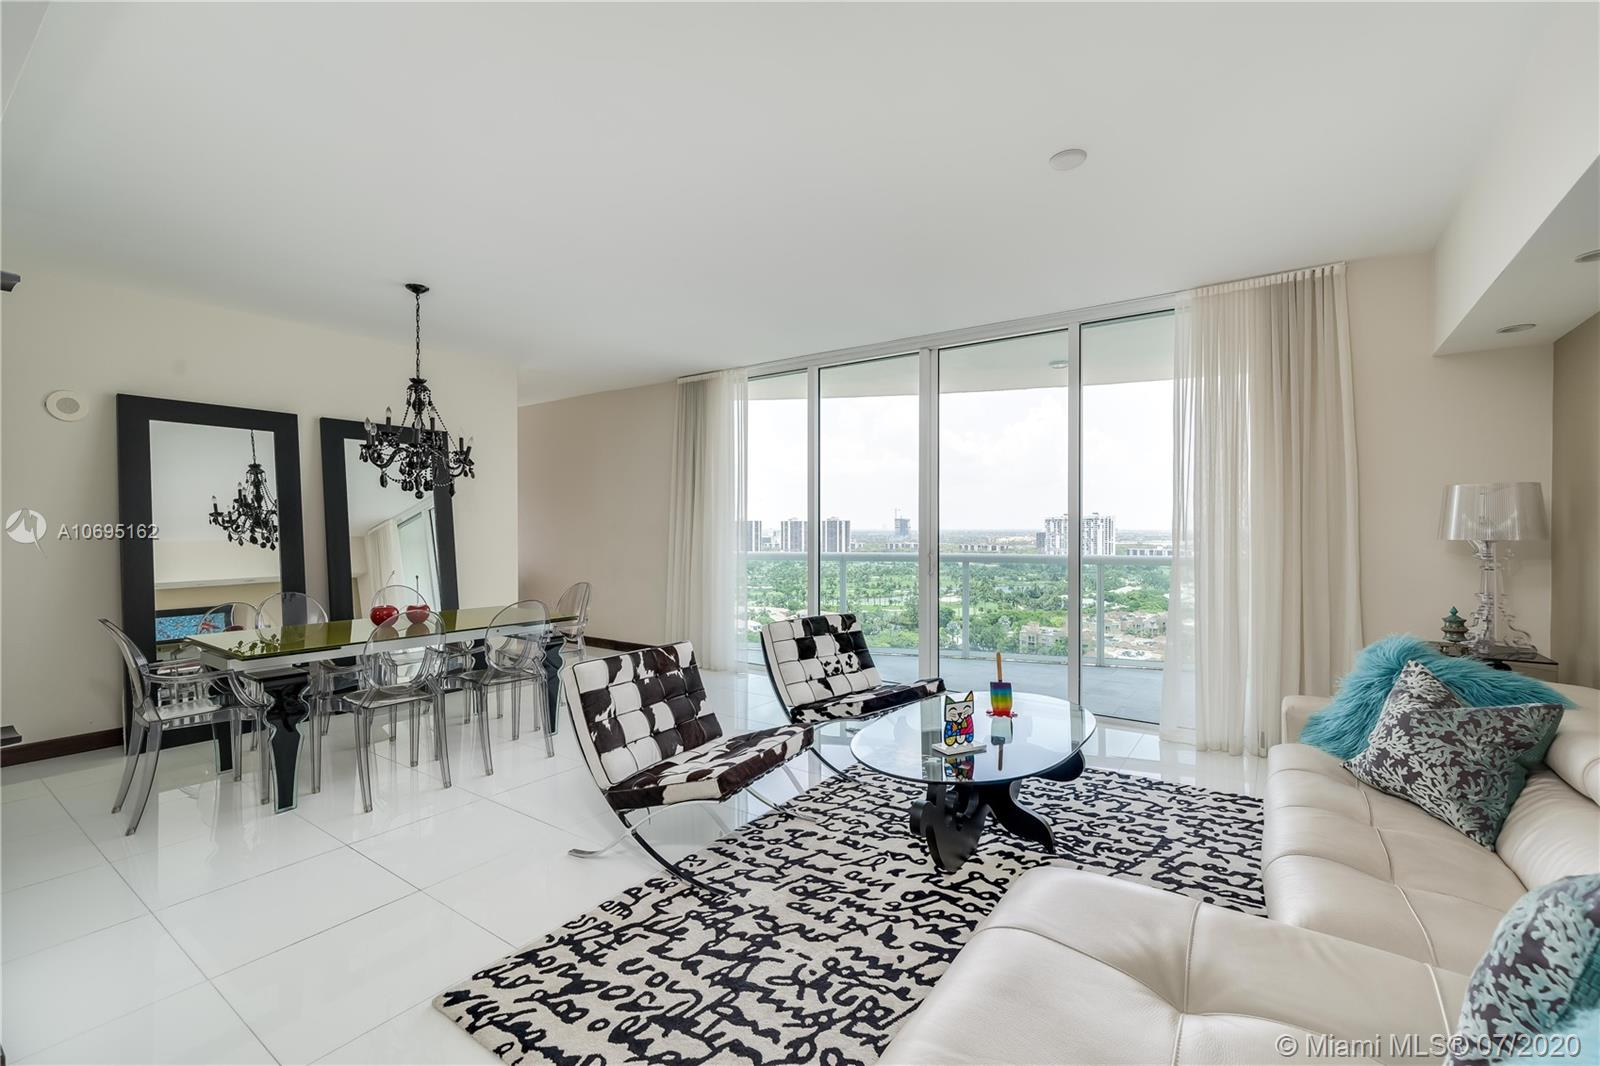 19400 Turnberry Way 2012, Aventura, FL 33180